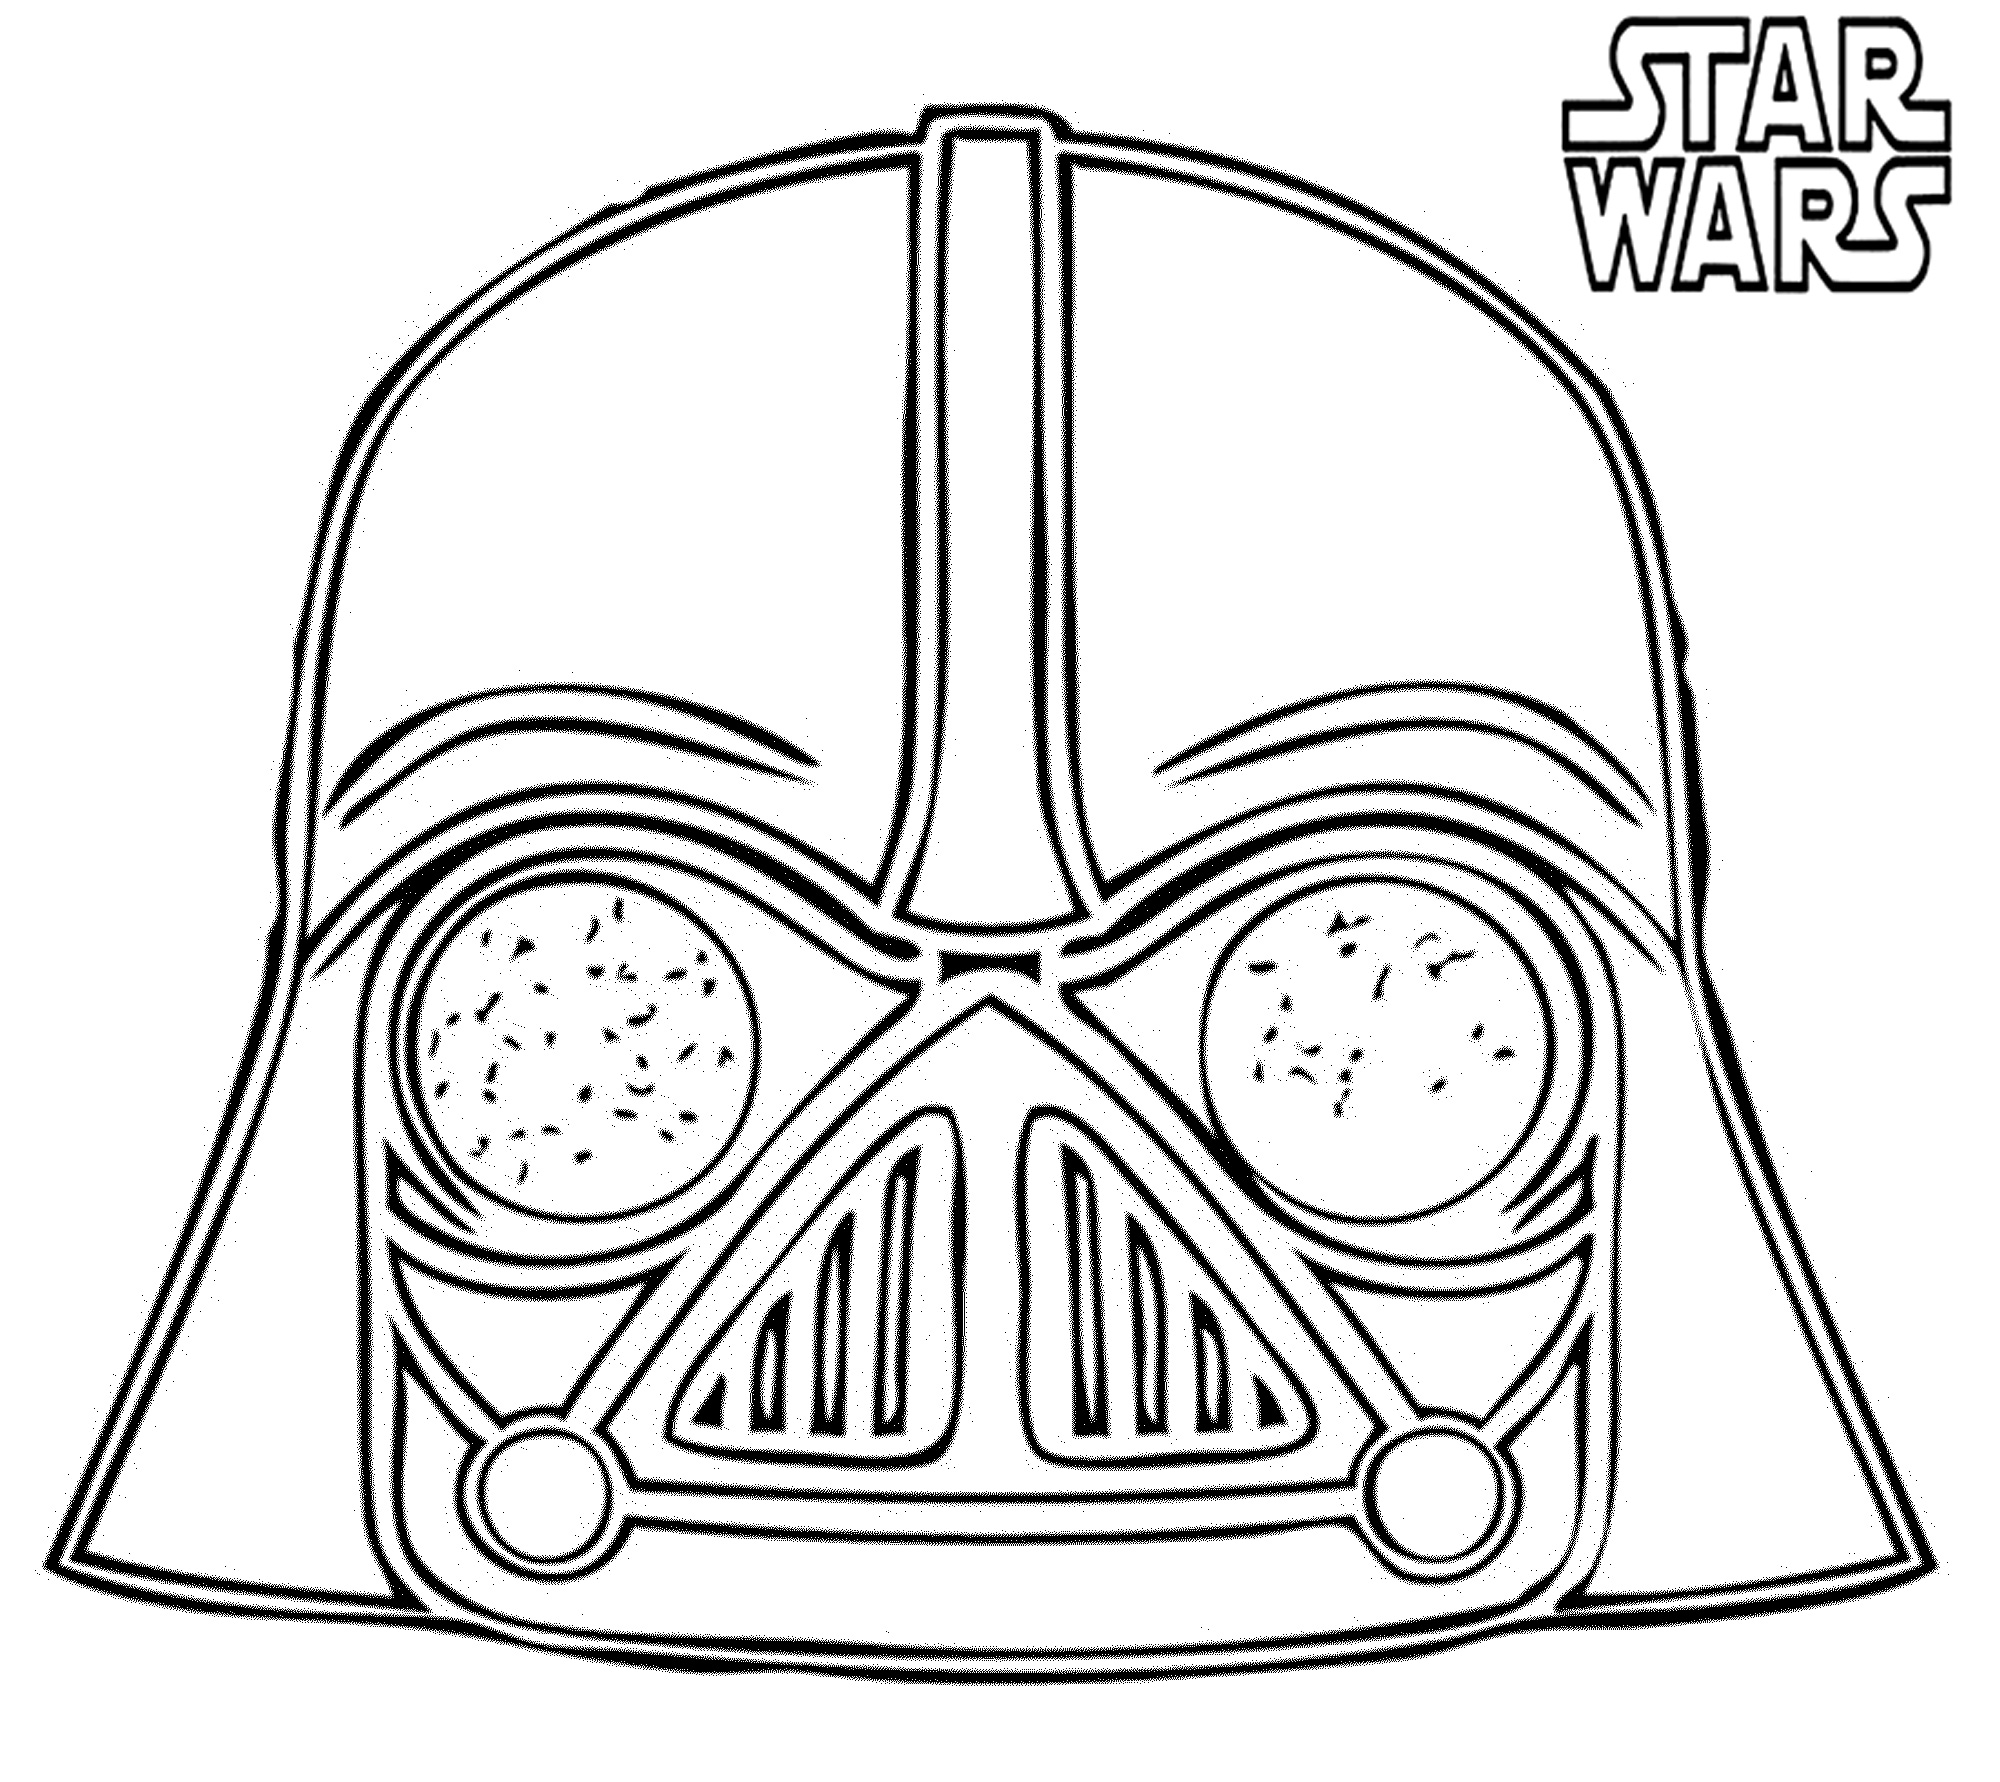 50 Top Star Wars Coloring Pages Online Free Angry Birds Wars Coloring Pages Printable